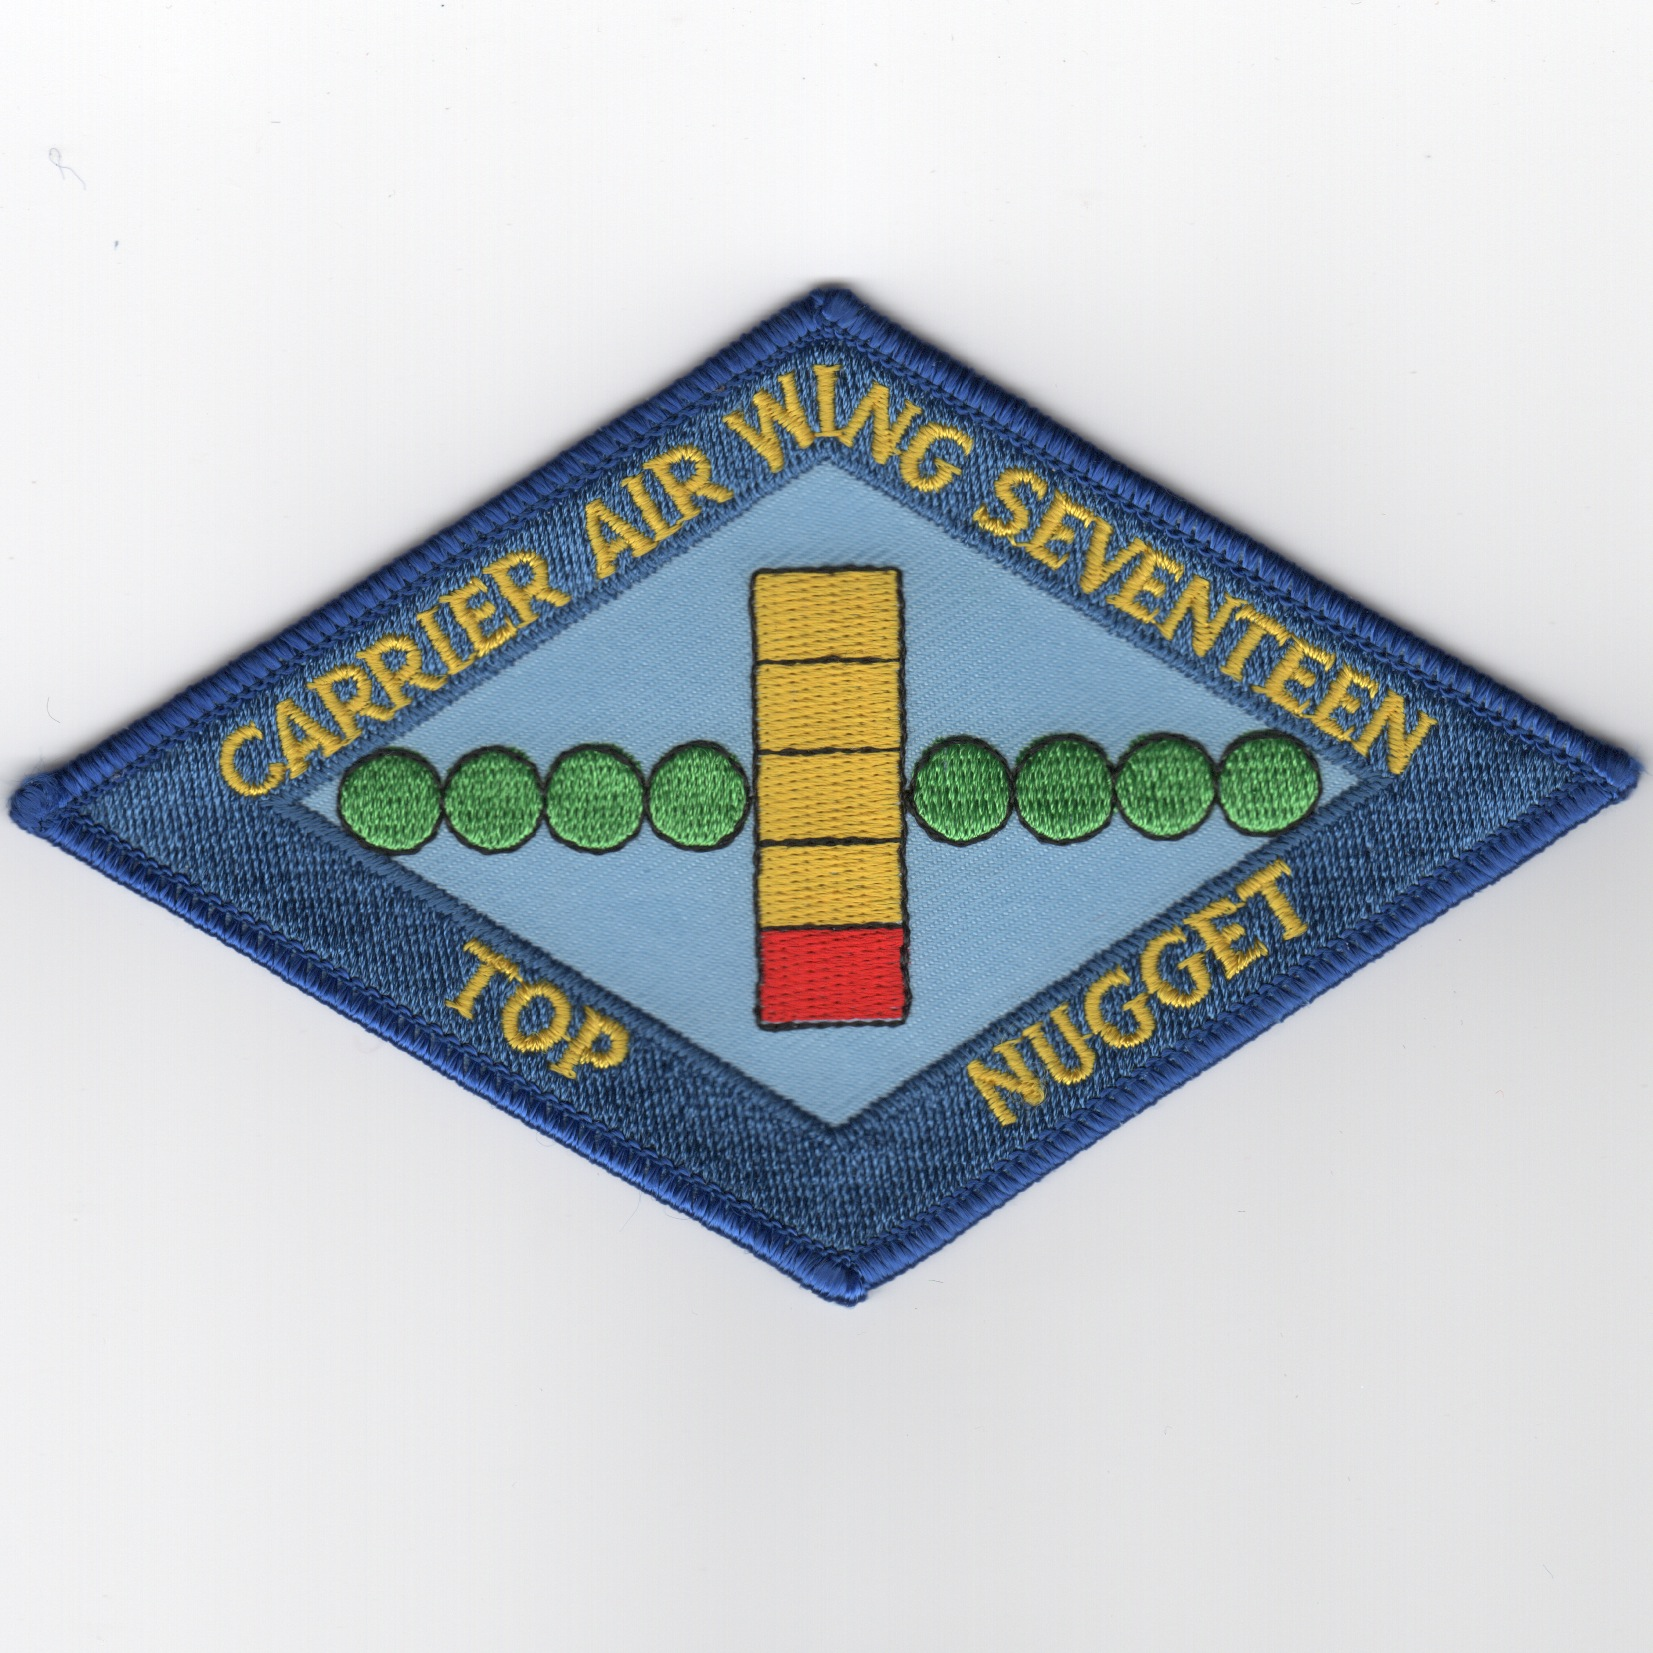 CVW-17 'TOP NUGGET' Traps Patch